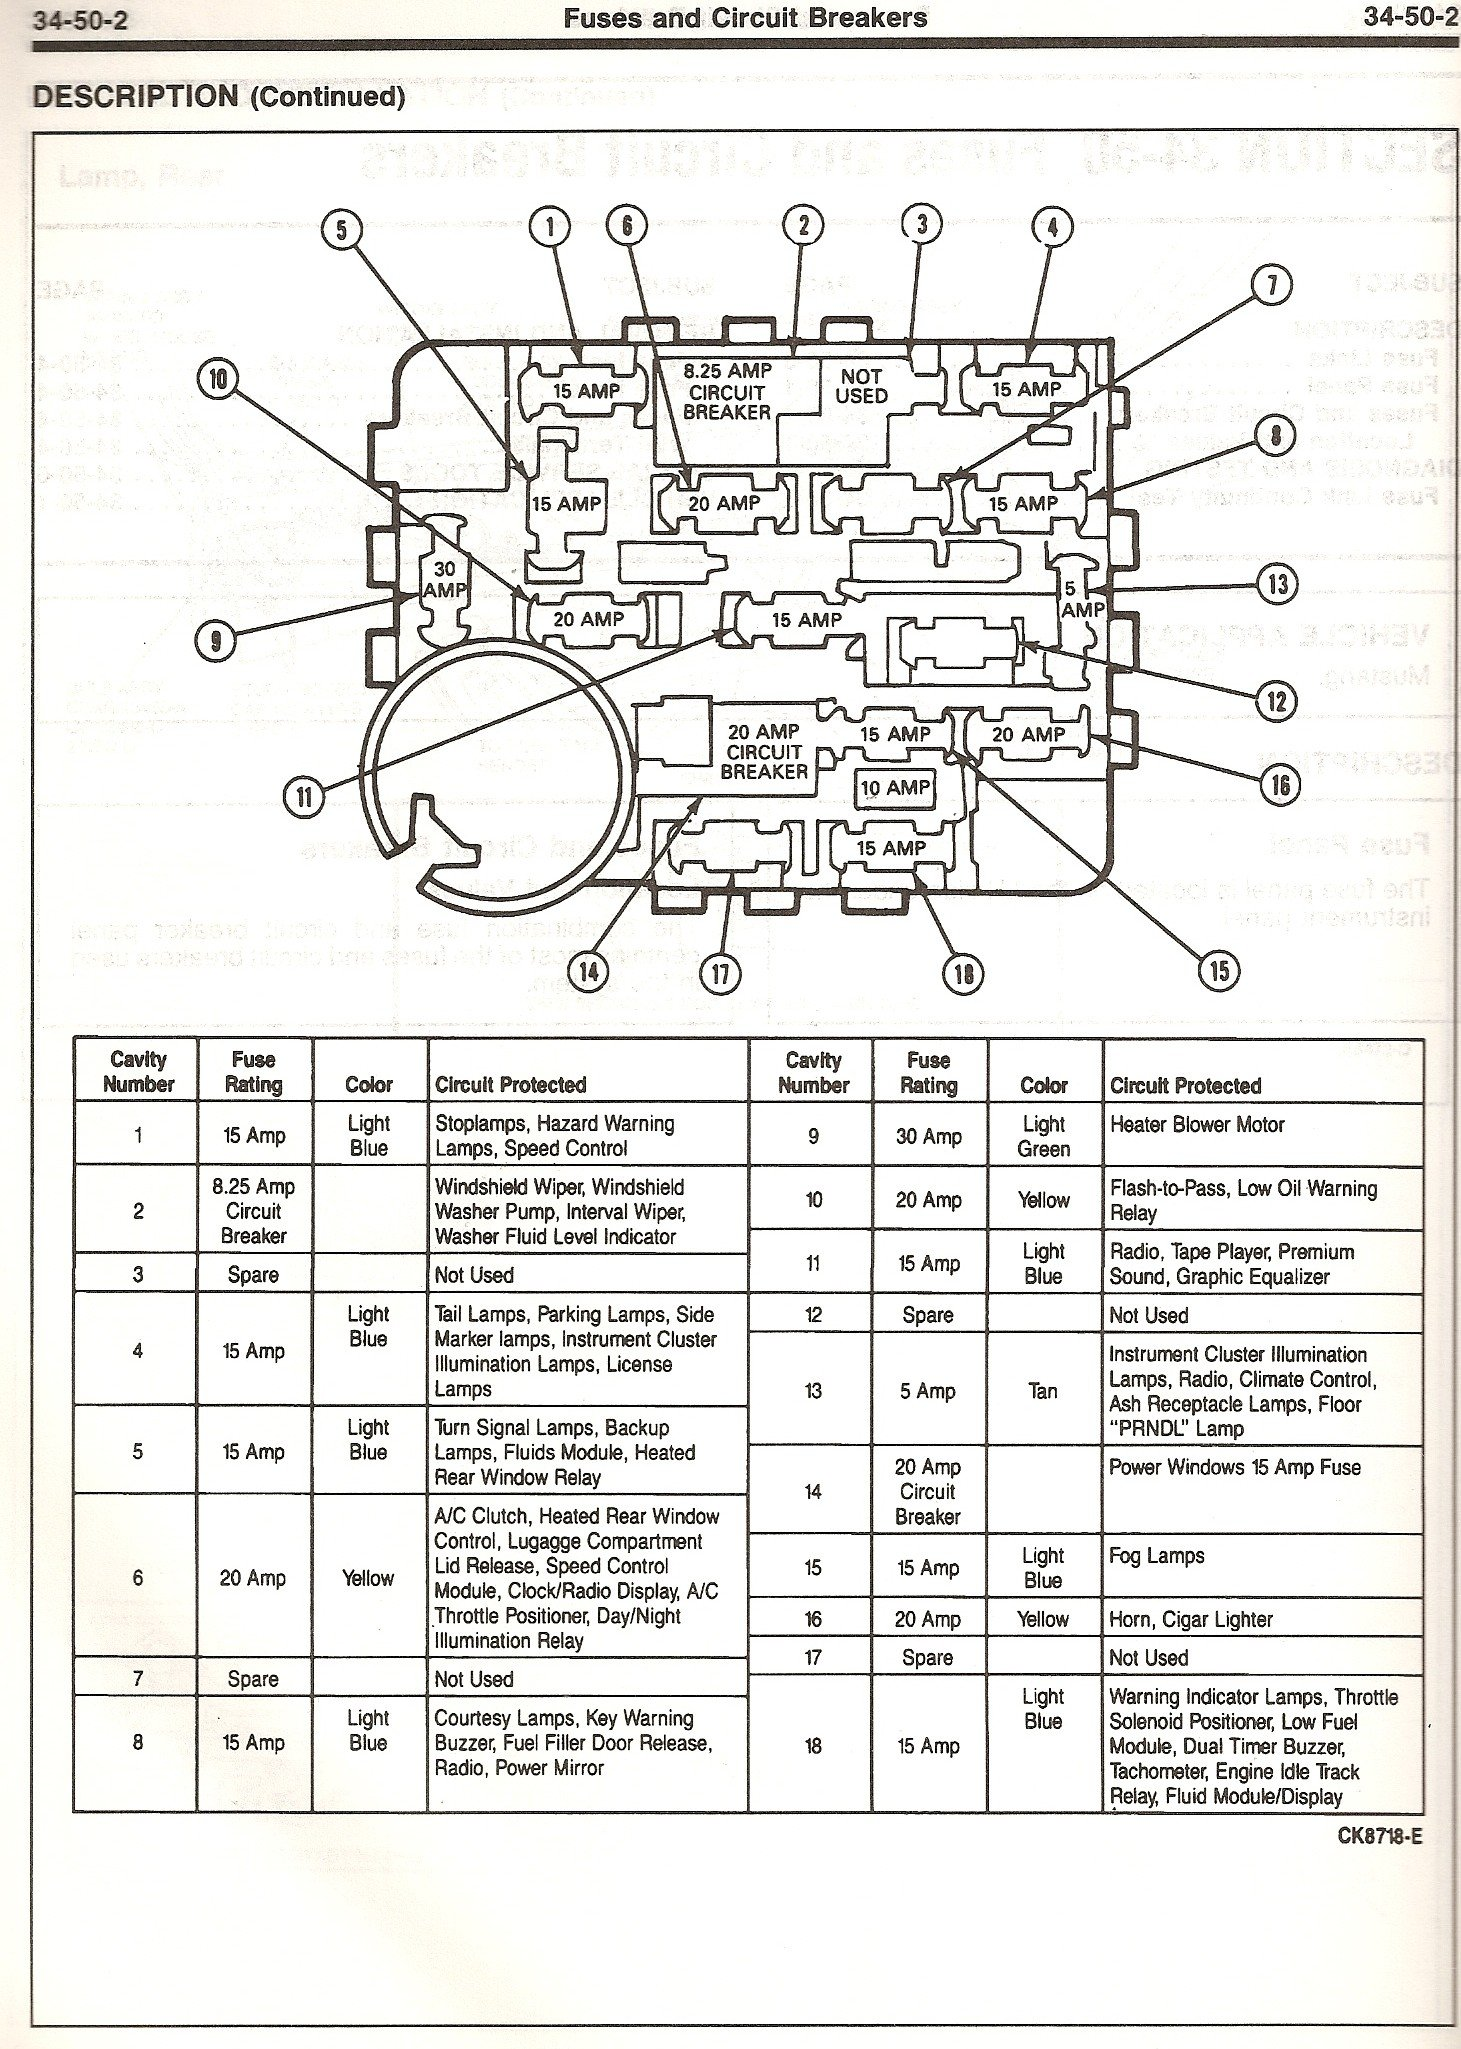 1991 International Wiring Diagram Simple Guide About 1990 2 3 Mustang Missing Fuse Panel Ford 4900